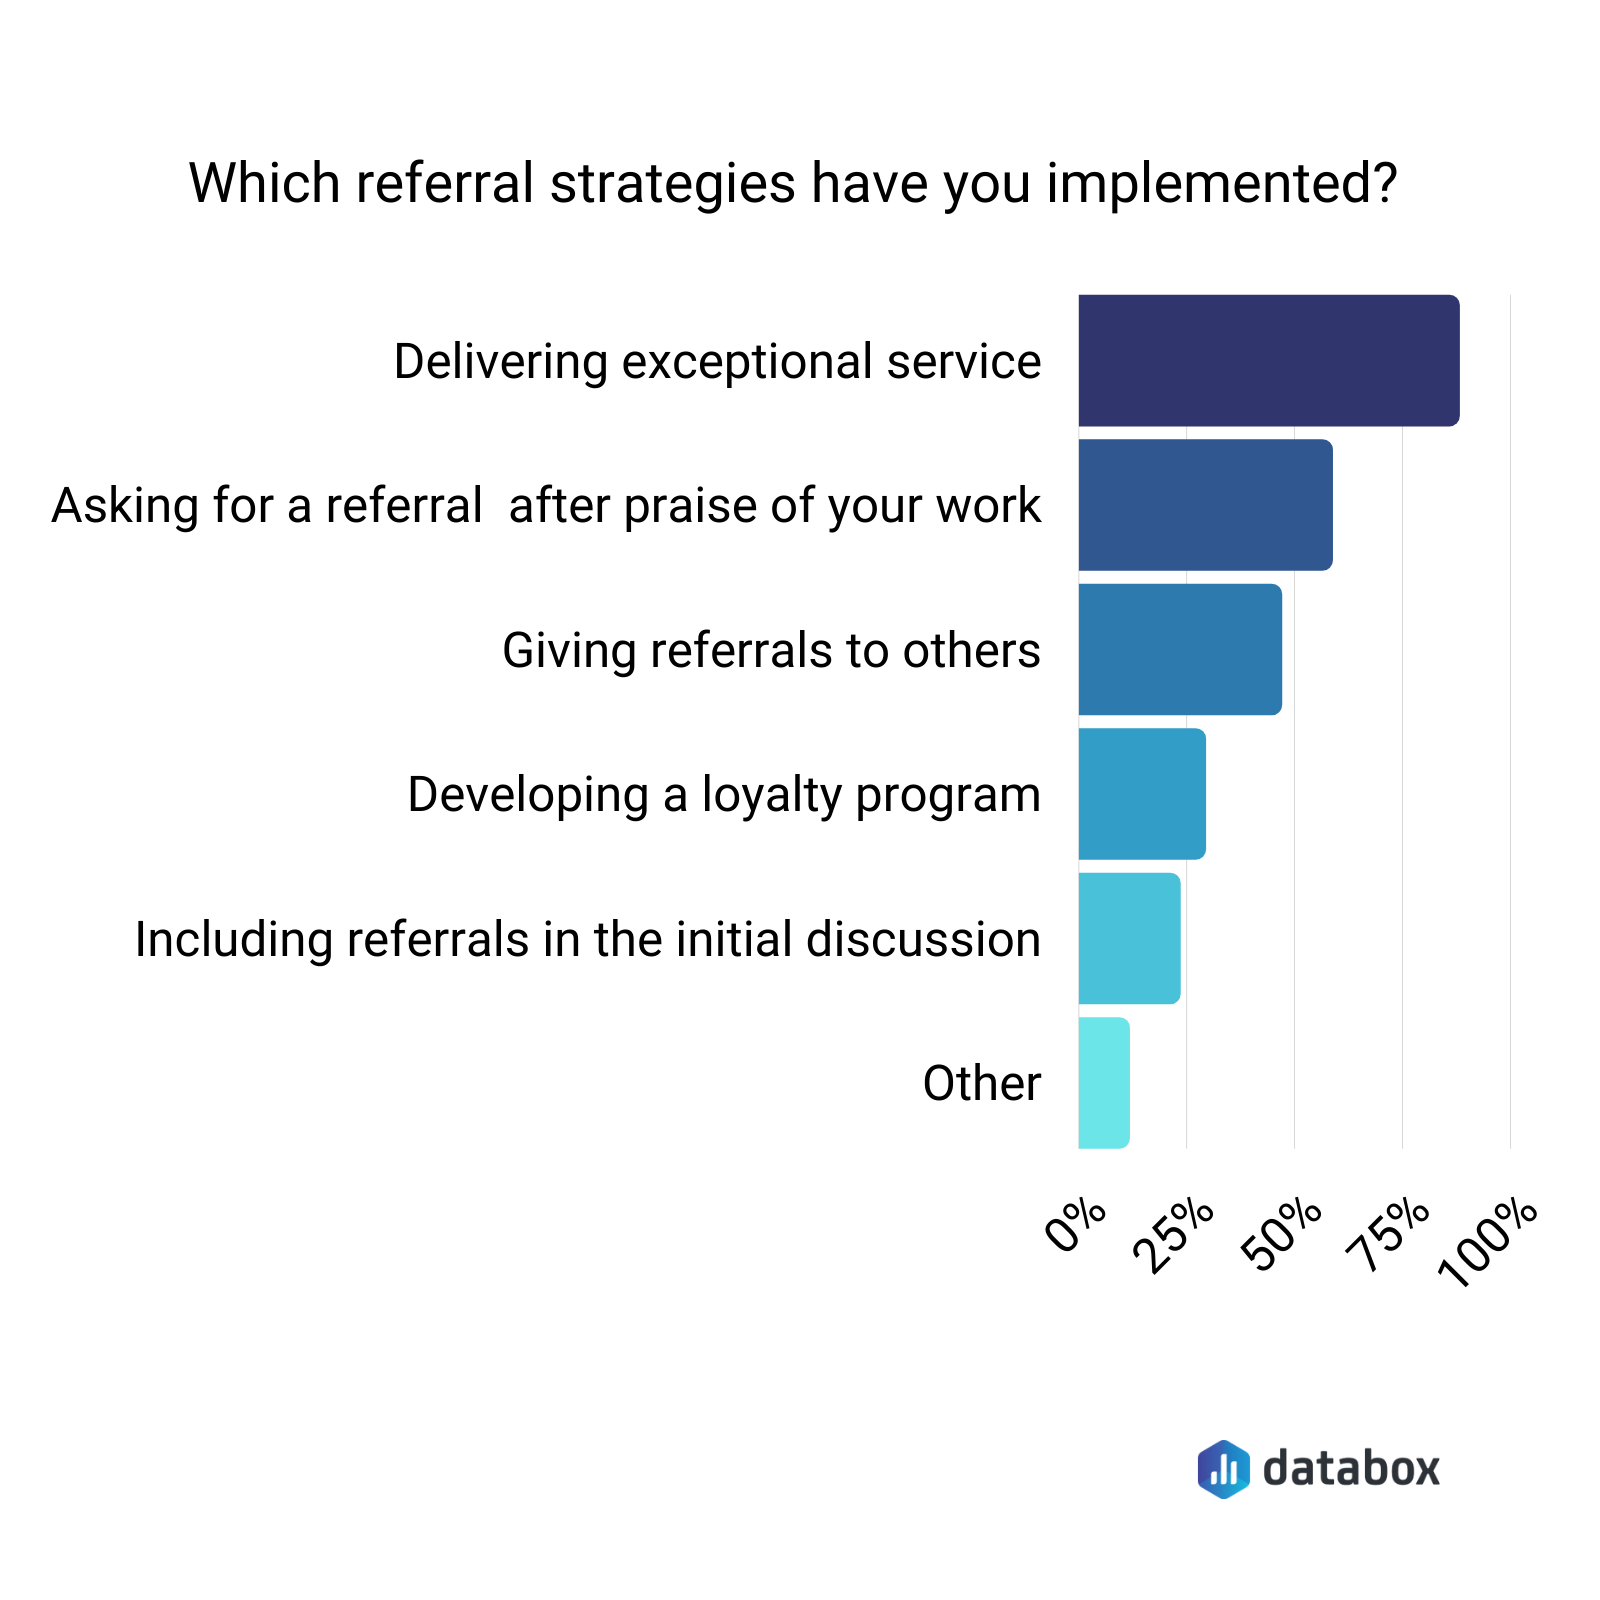 Most effective referral strategies